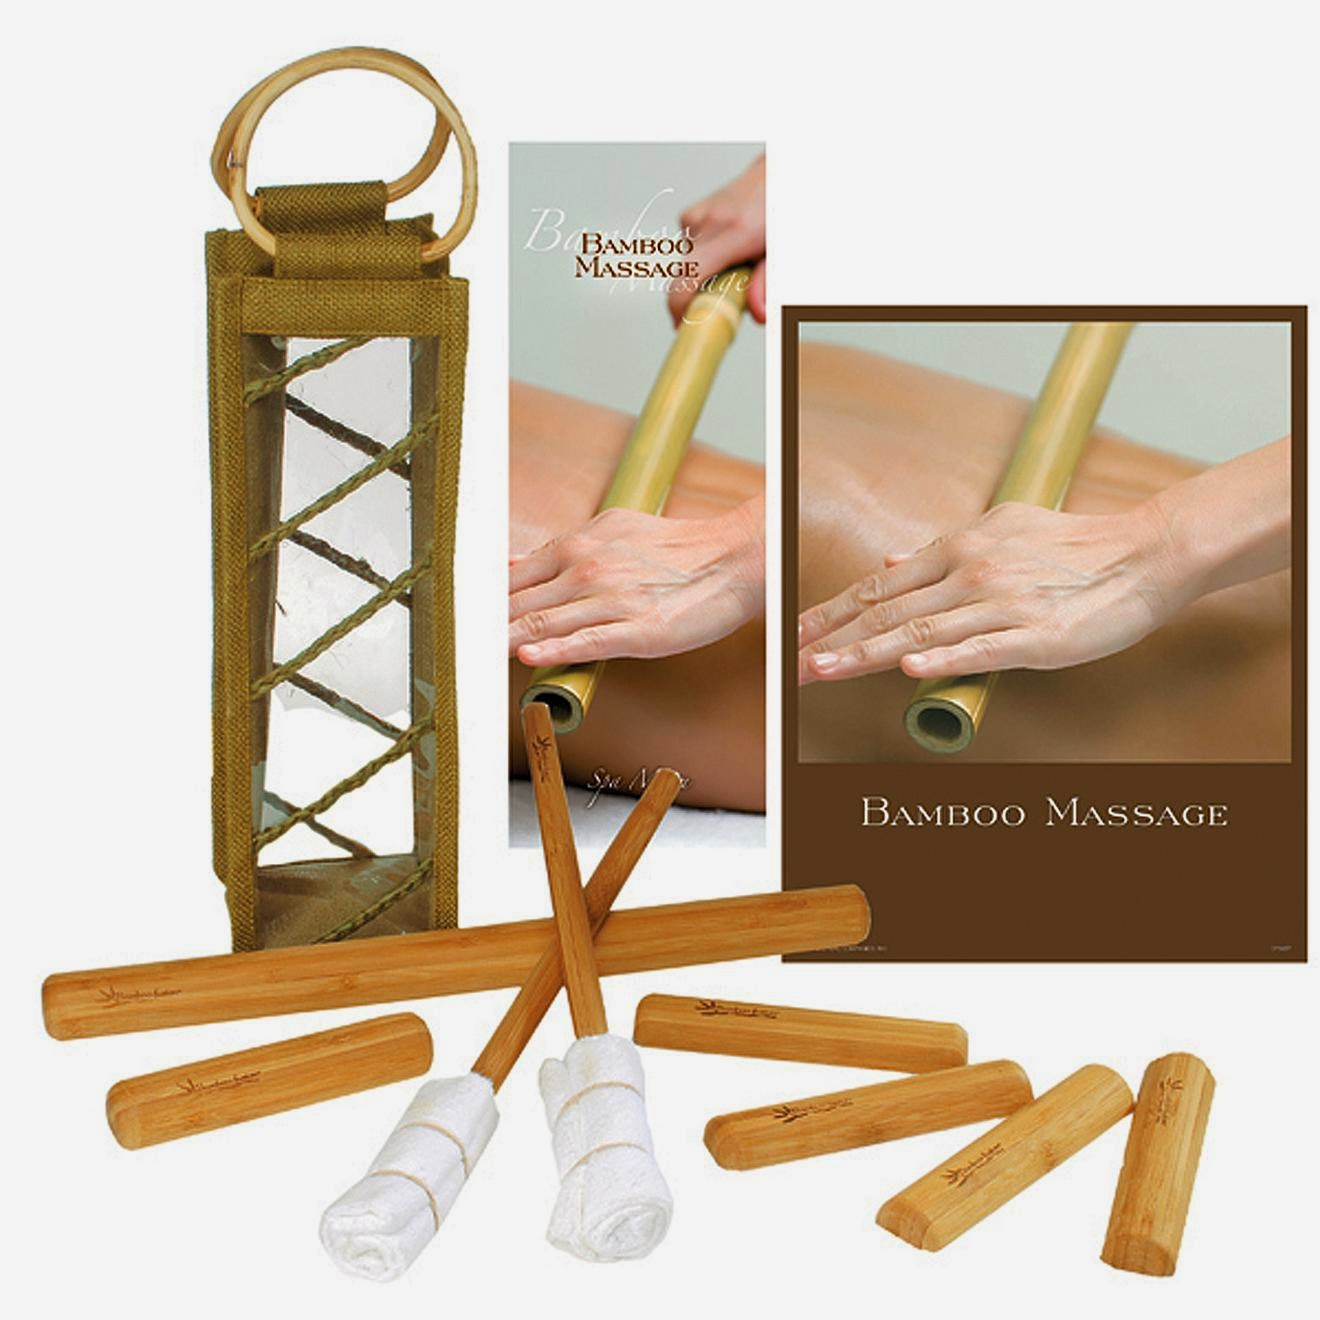 bamboo massage tools